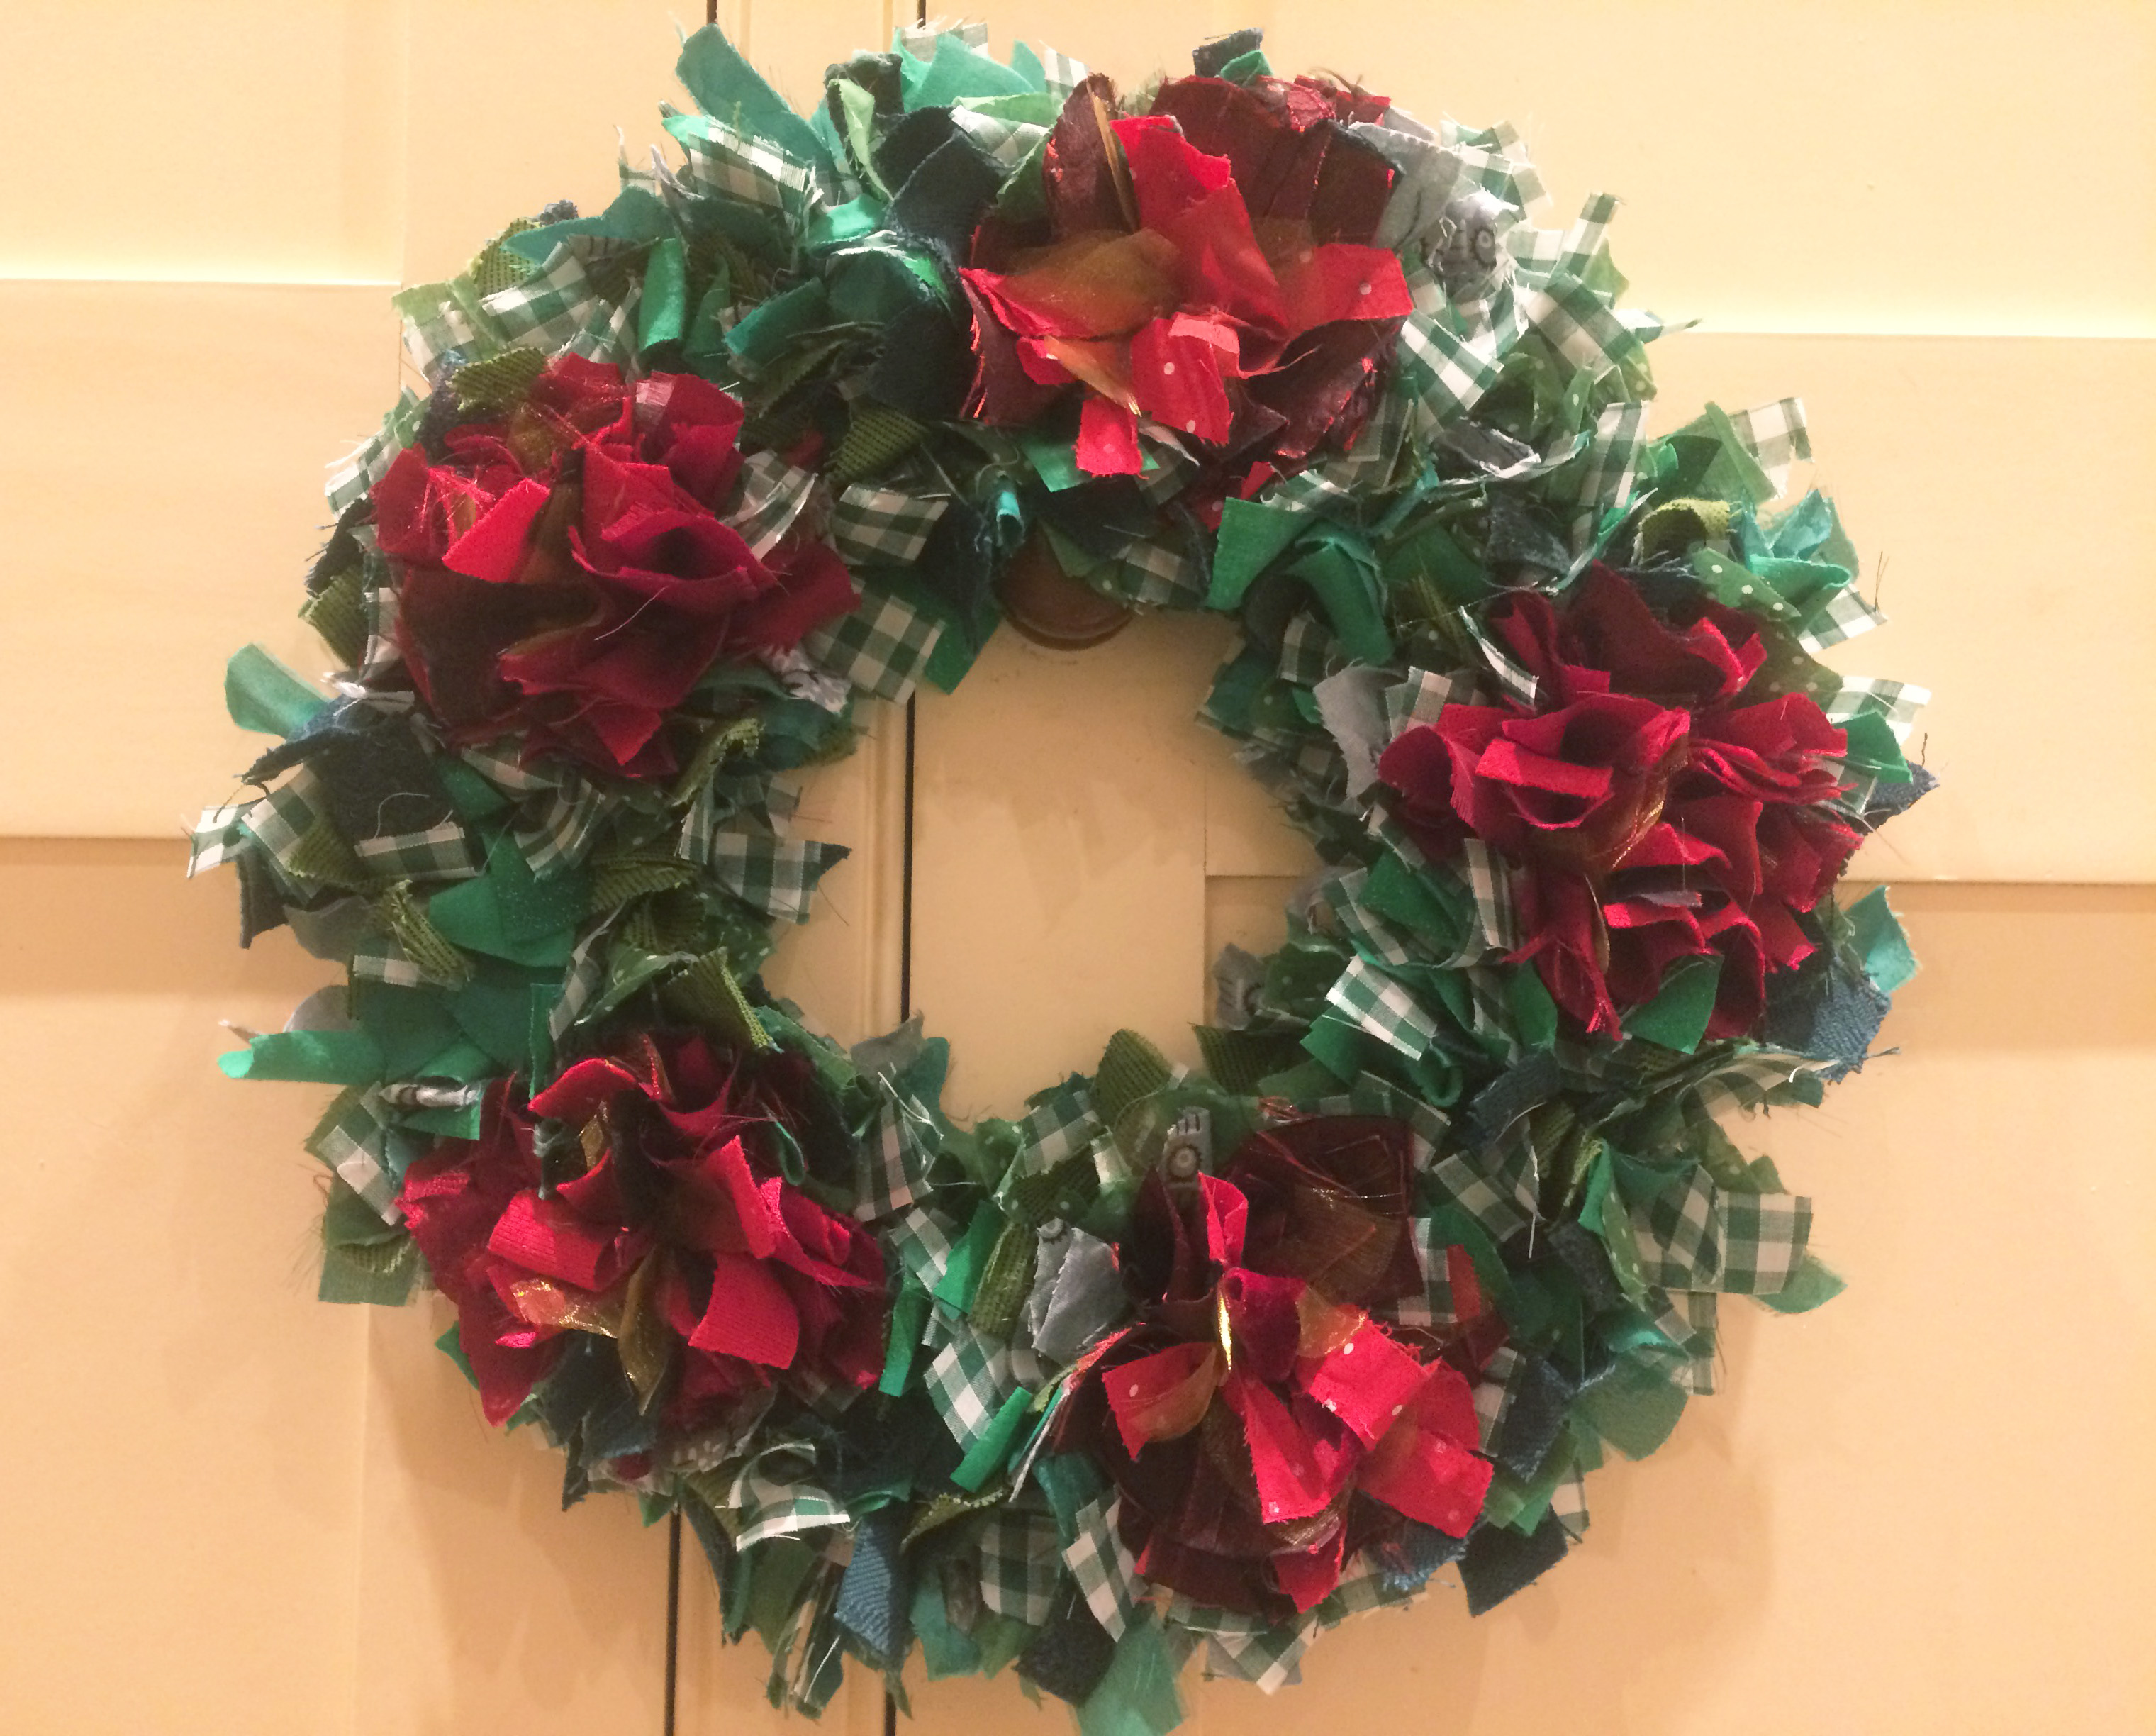 Traditional shaggy rag rug christmas wreath made using recycled materials by Cathy.